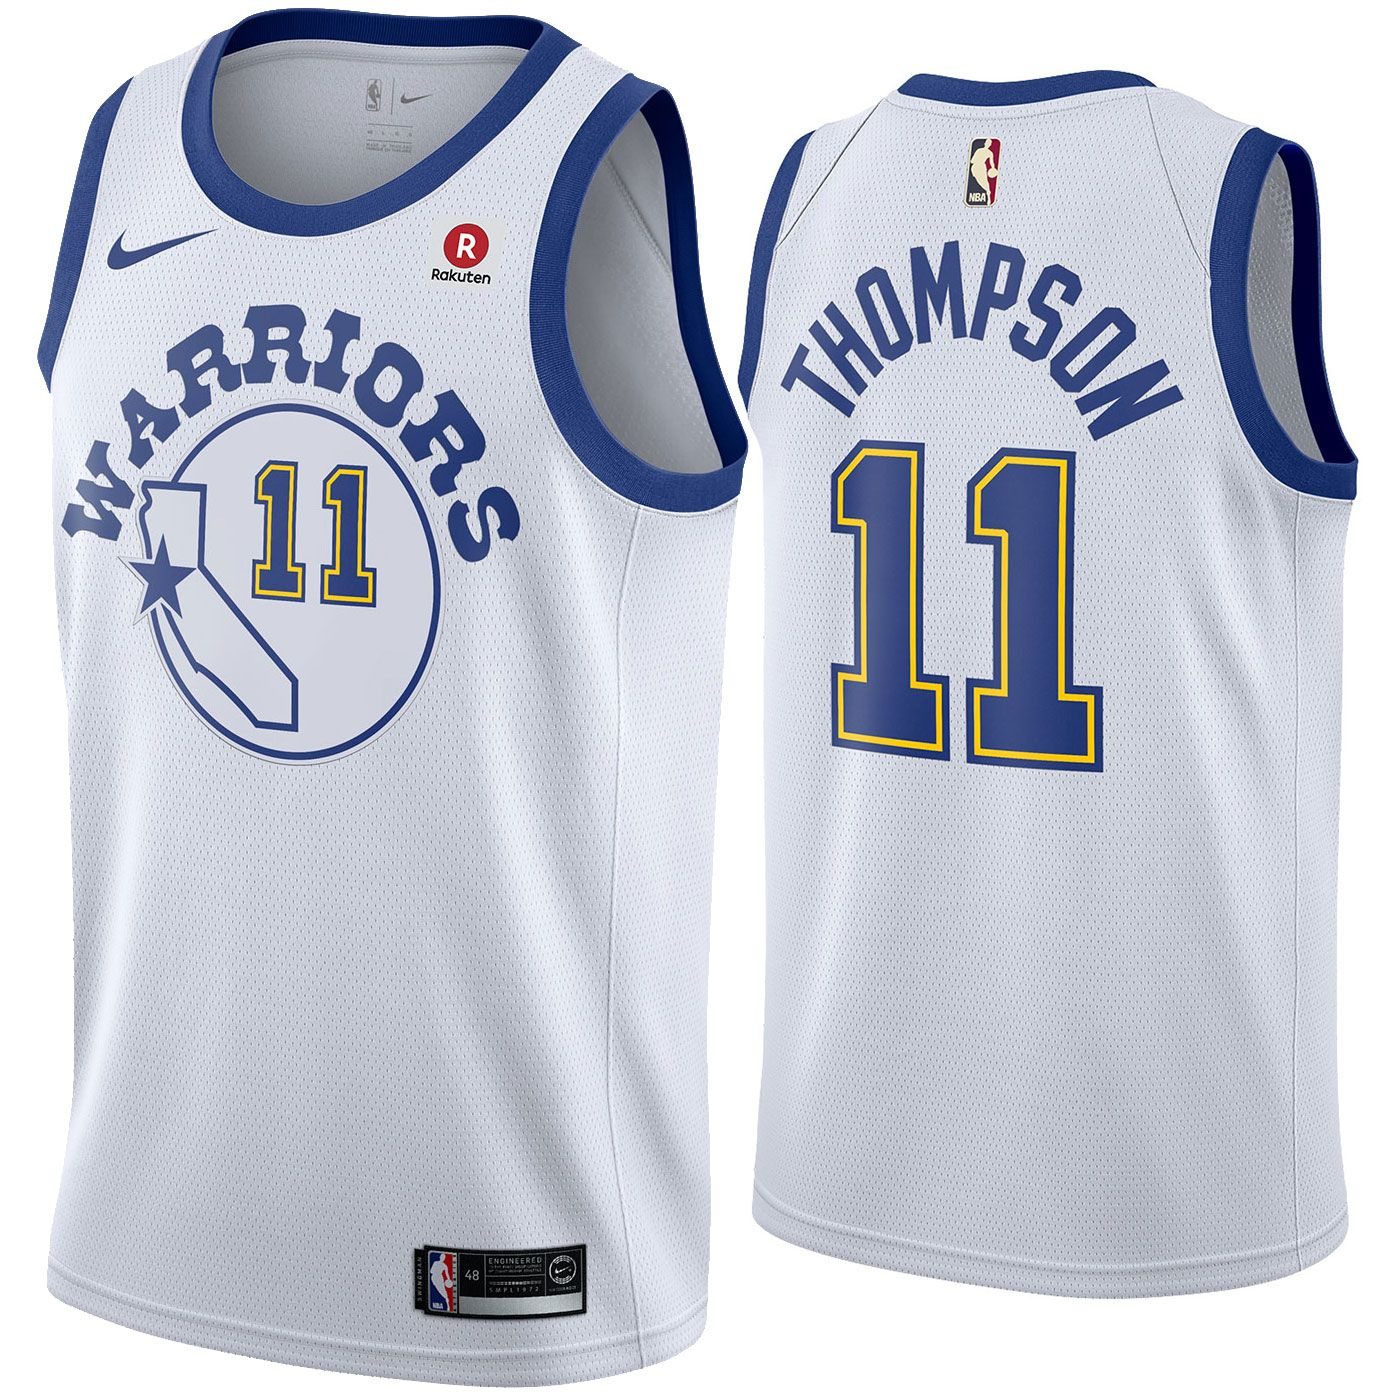 e33f1ad3064 Golden State Warriors Nike Dri-FIT Men's Klay Thompson #11 Swingman  Hardwood Classic Jersey - White - Golden State Warriors - Official Online  Store